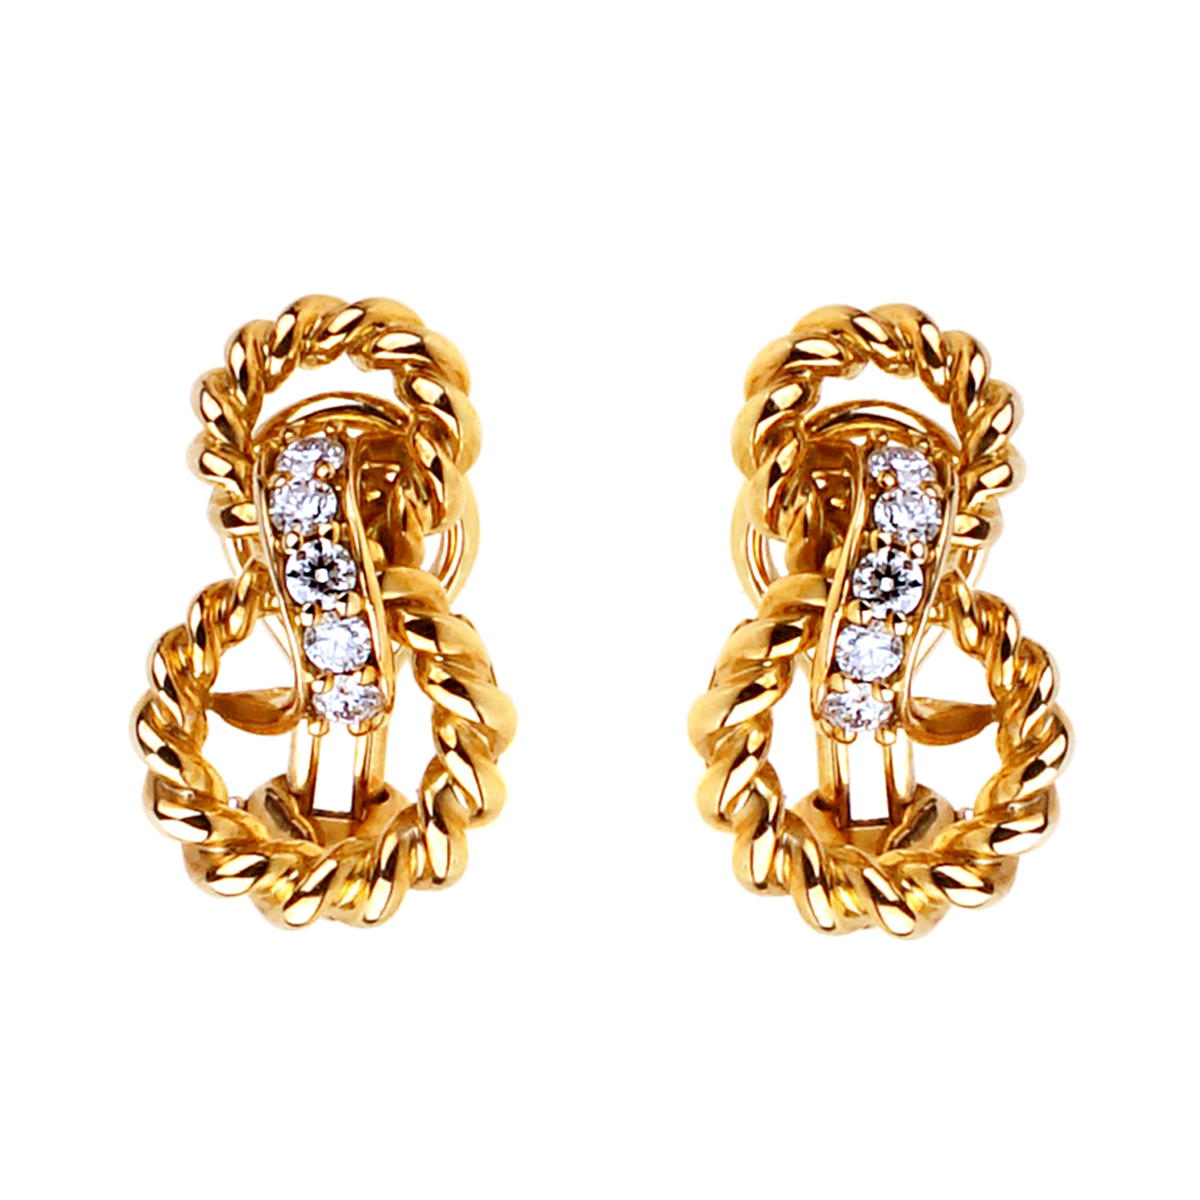 Tiffany & Co Braided Gold Diamond Earrings - Tiffany and Co Jewelry